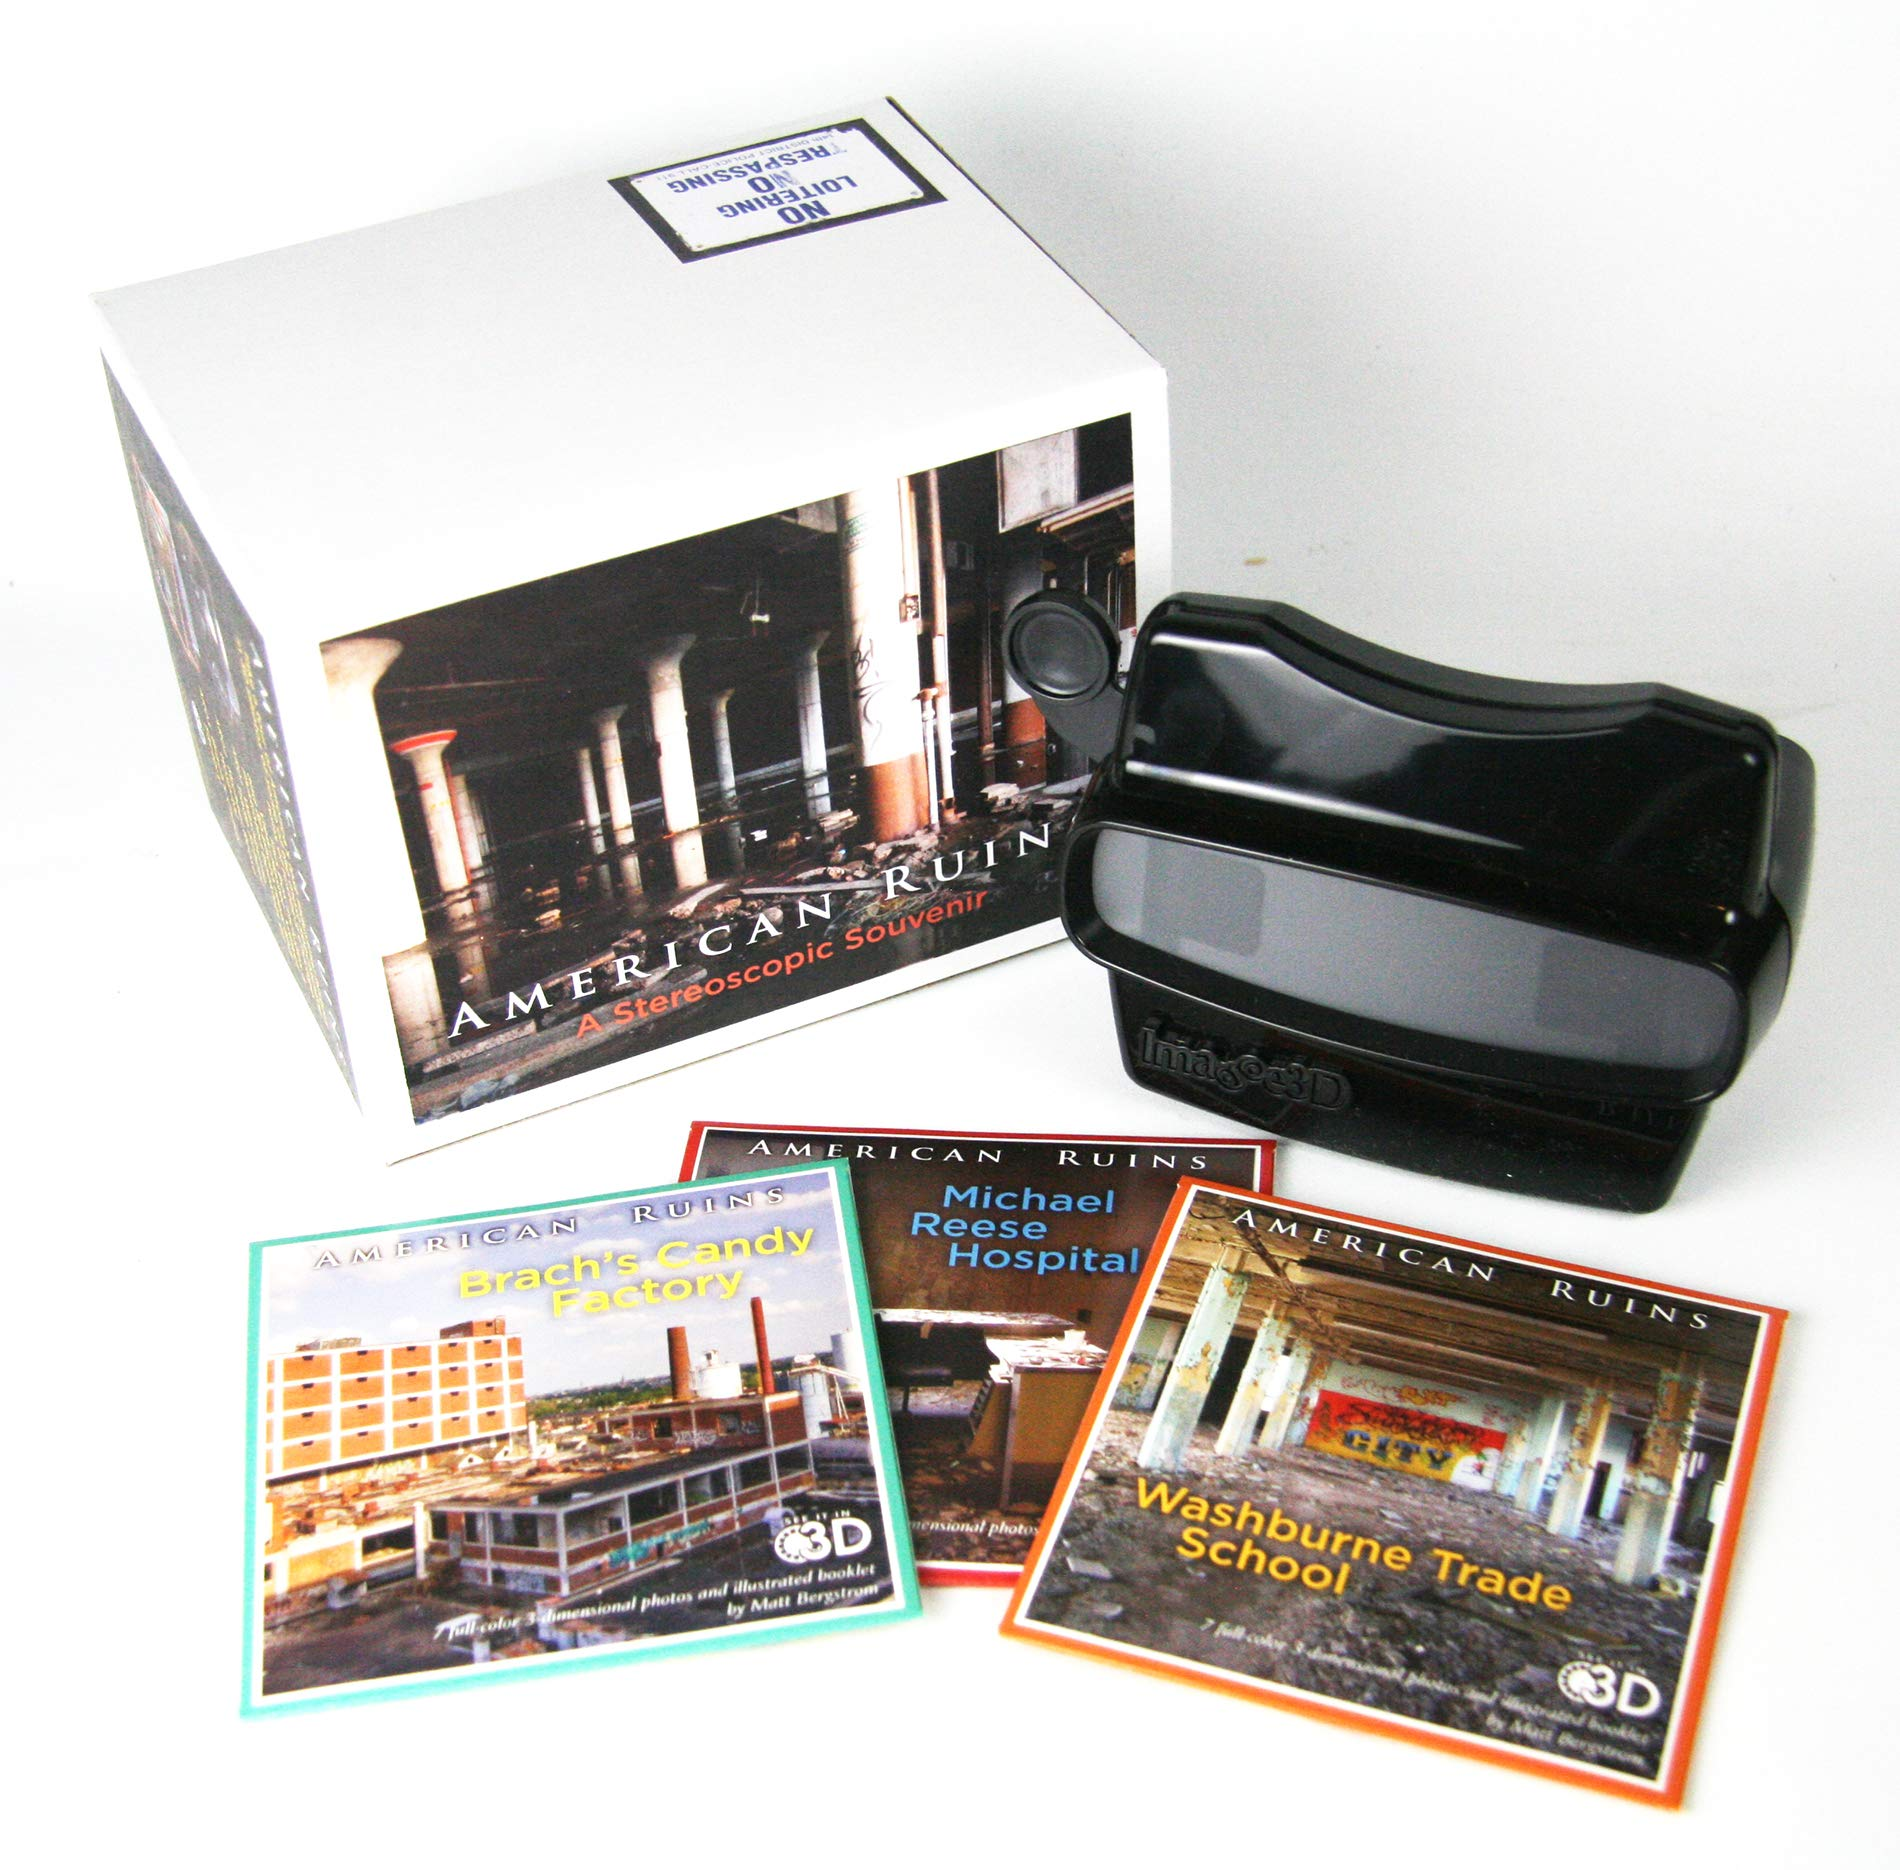 American Ruins - Stereoscopic Souvenir - GIFT SET - Viewer & Reels - Michael Reese Hospital, Washburn Trade School, Brach's Candy